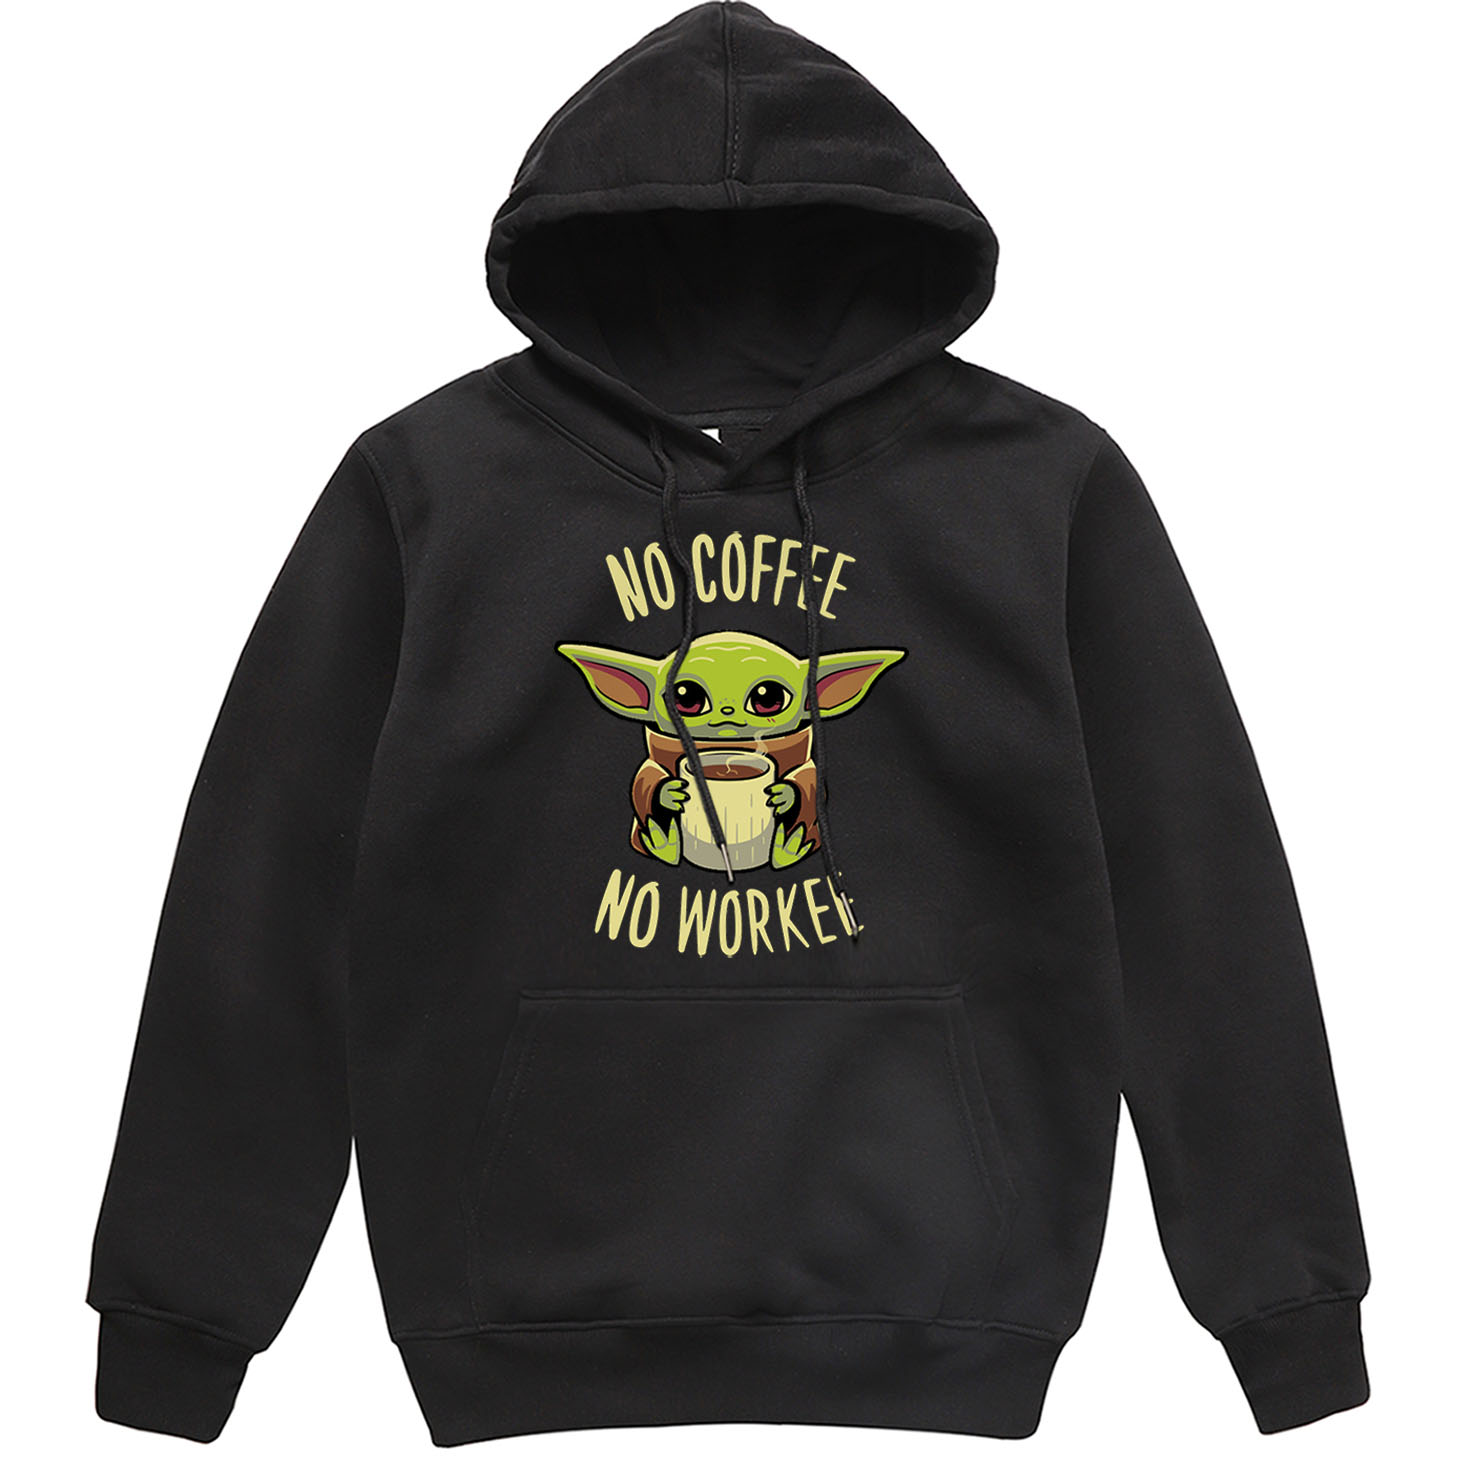 Funny Print NO COFFEE NO WORKEE Clothing Men Spring Autumn Warm Sweatshirts Stars Wars Mandalorian Baby Yoda Hoodies Streetwear